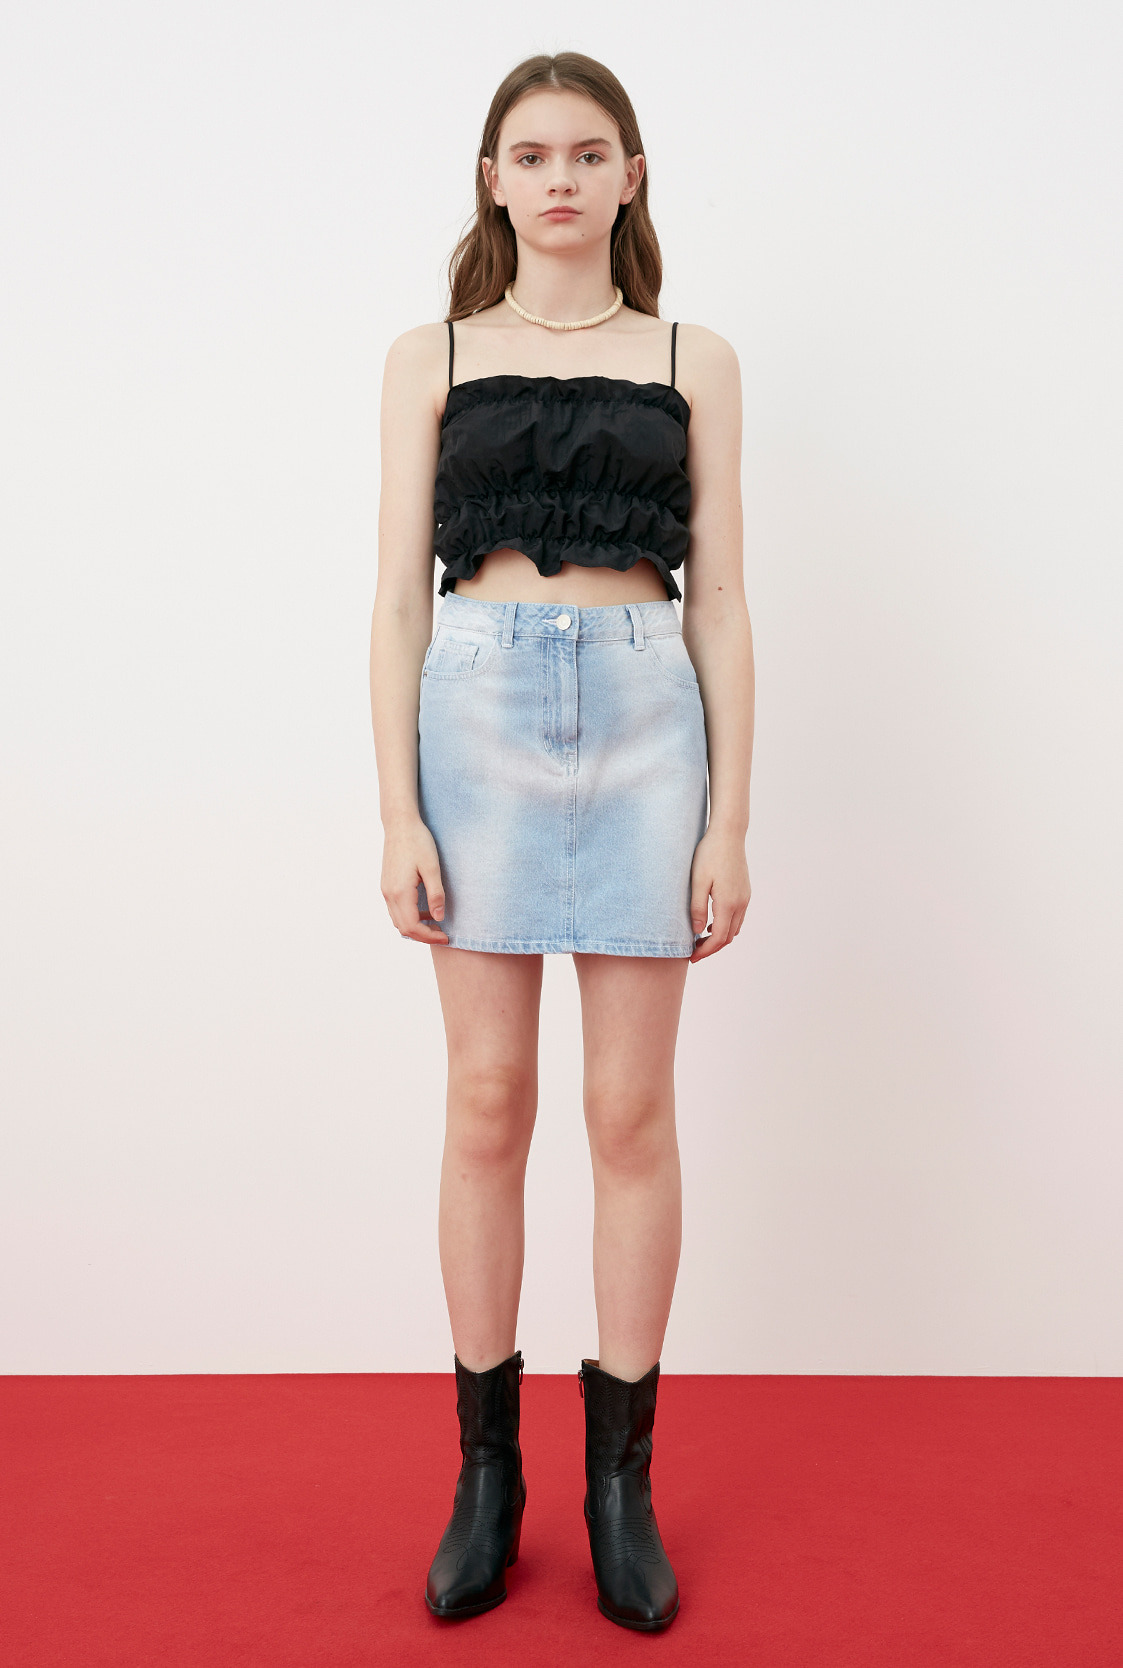 R TIE-DYE DENIM SKIRT